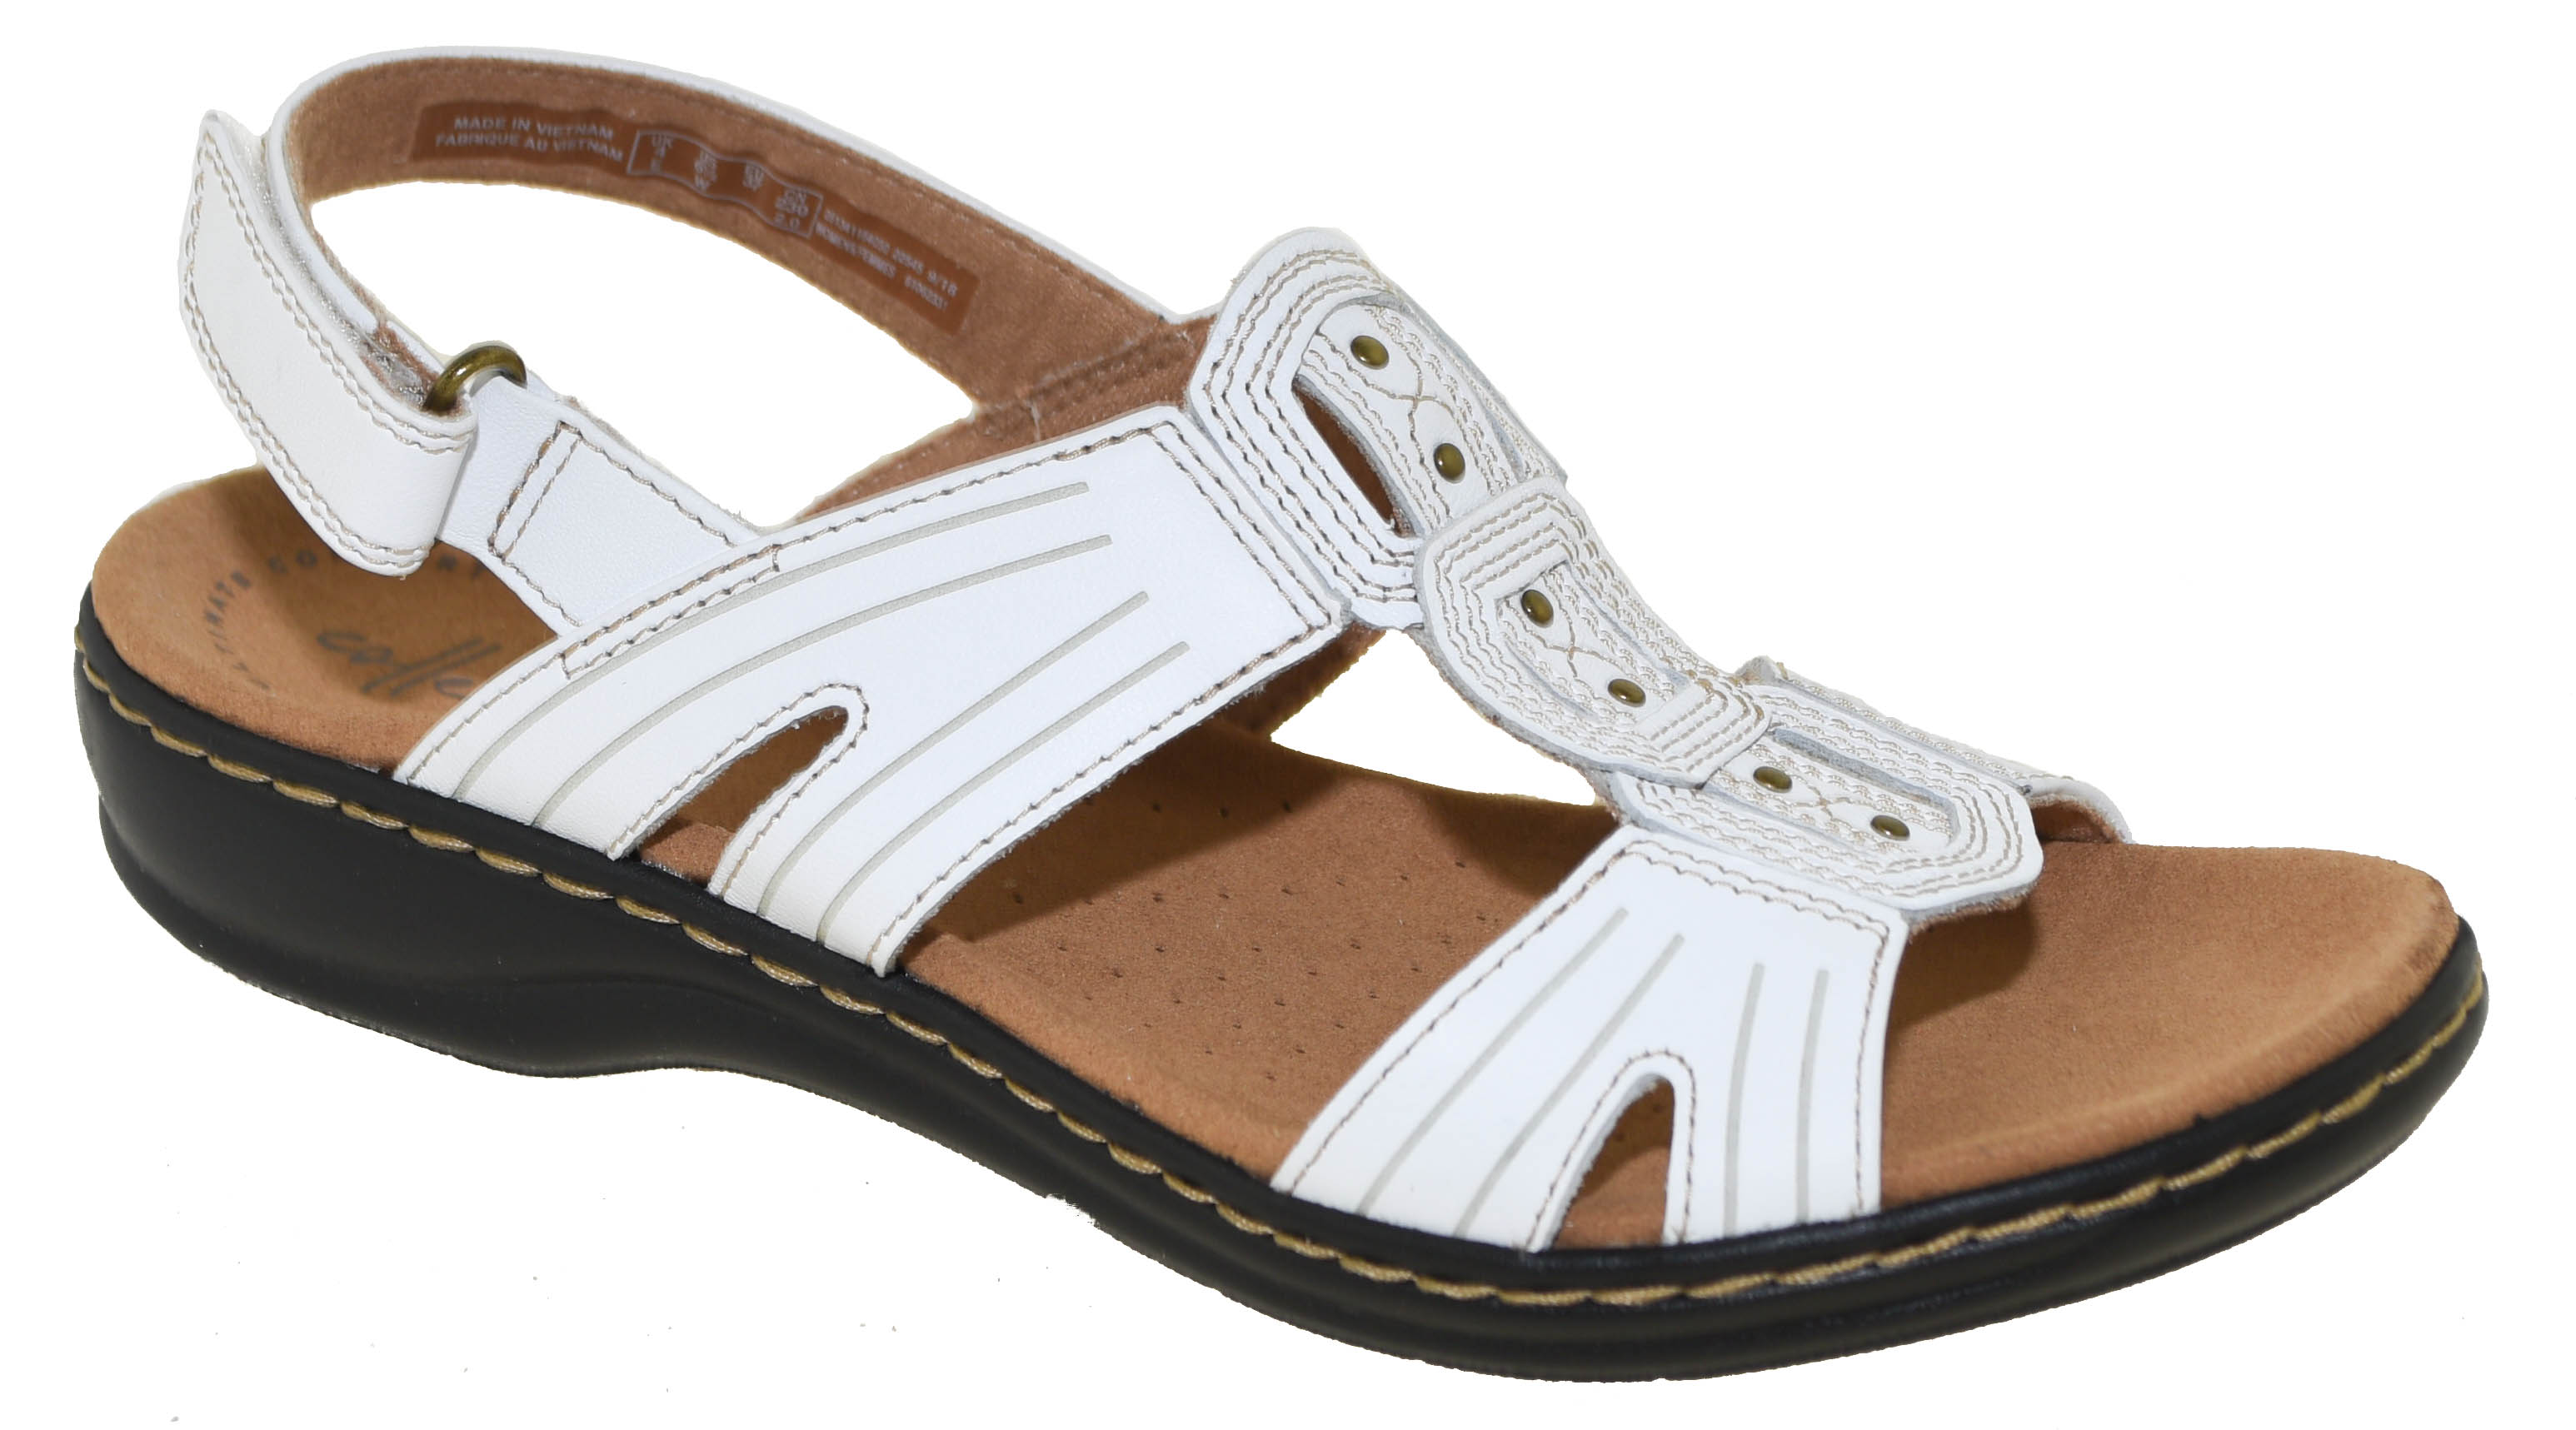 67b1fecb9d3 Clarks Women s Leisa Vine Platform Sandal White Leather Style 34116 ...